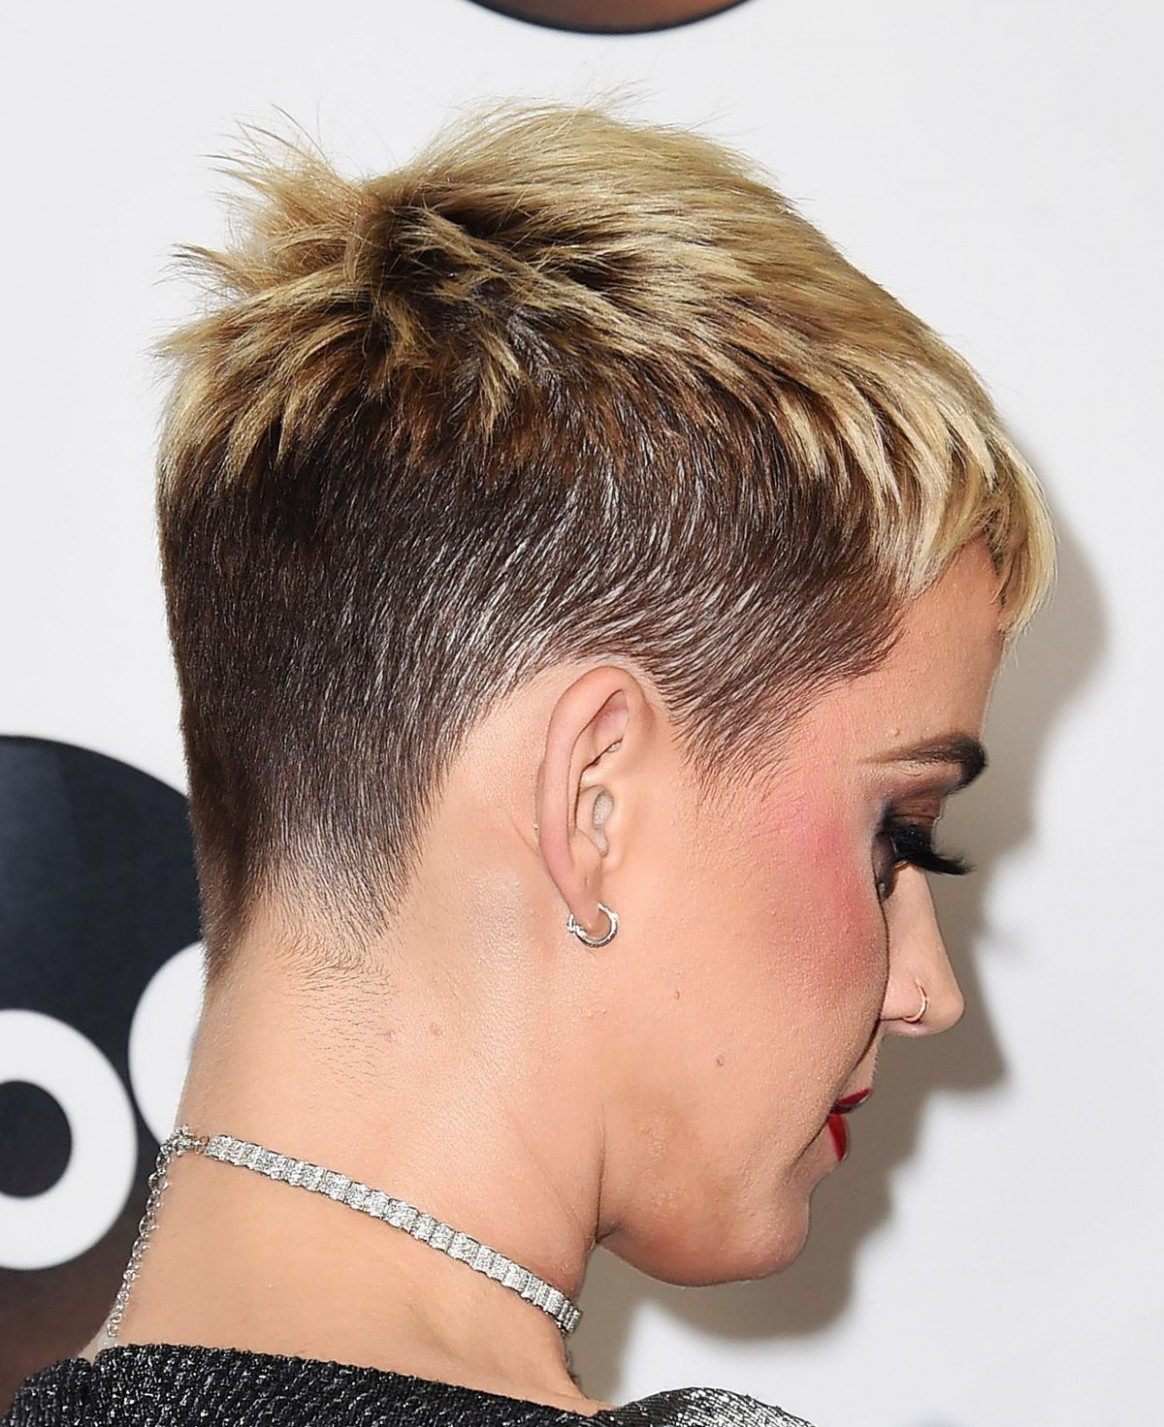 Katy Perry Haircut 9 Google Search Katy Perry Hair, Short Katy Perry Short Haircut